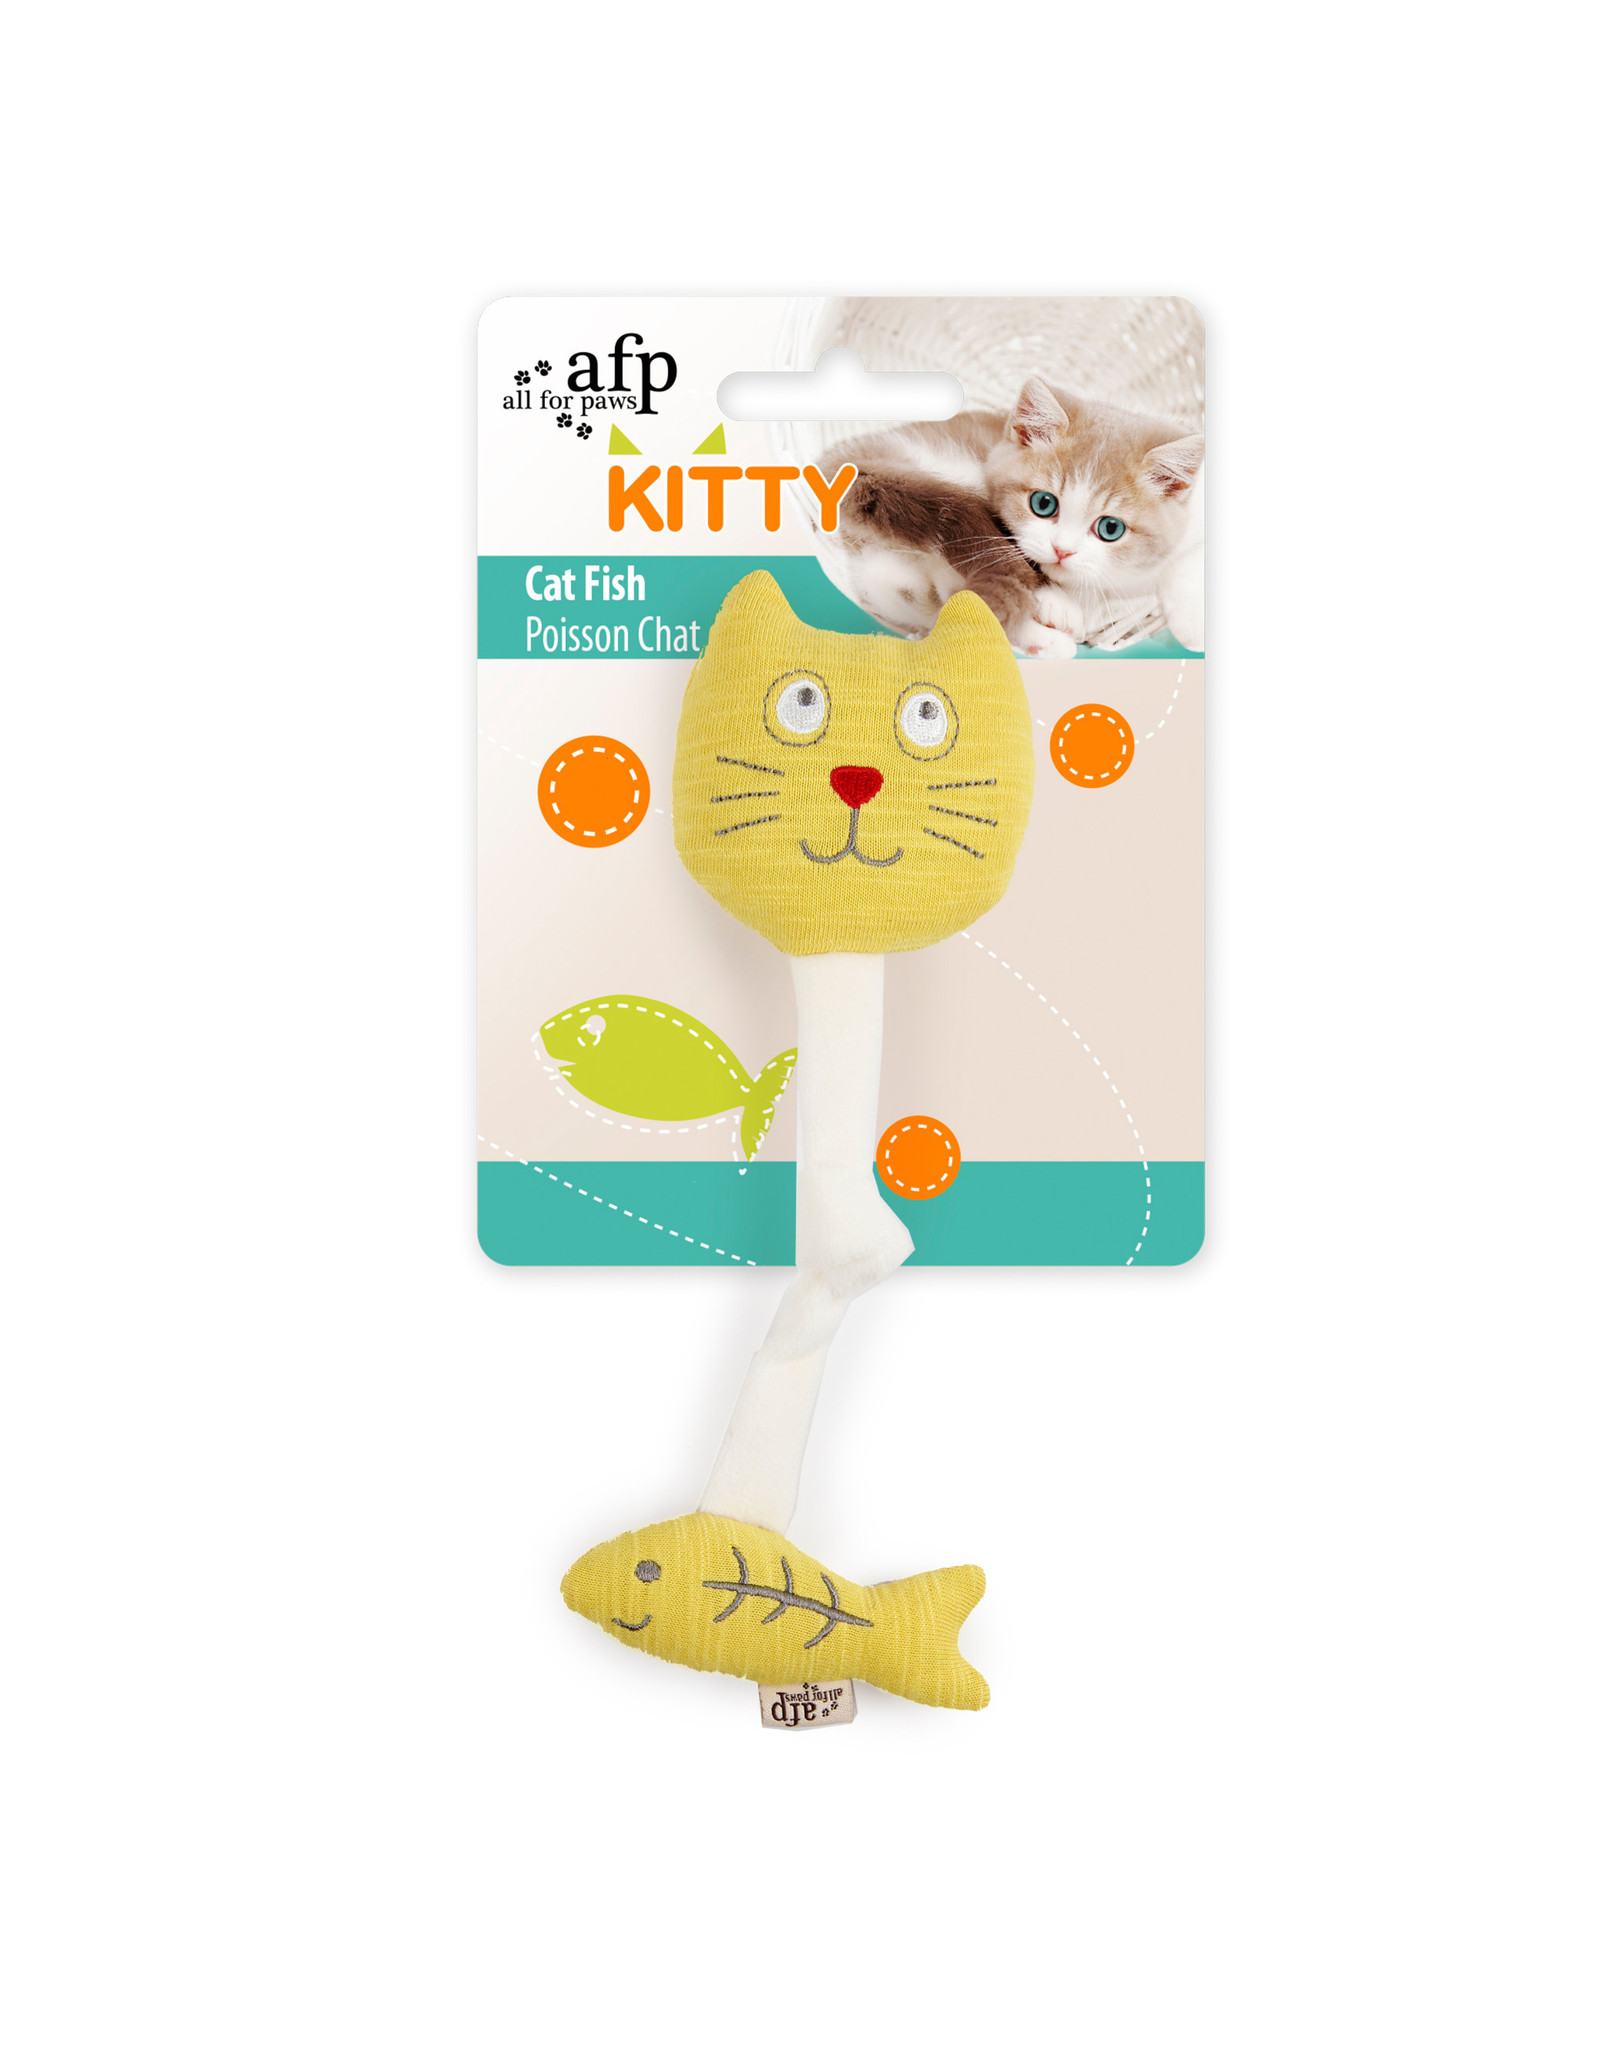 All for Paws Kitty Cat Fish